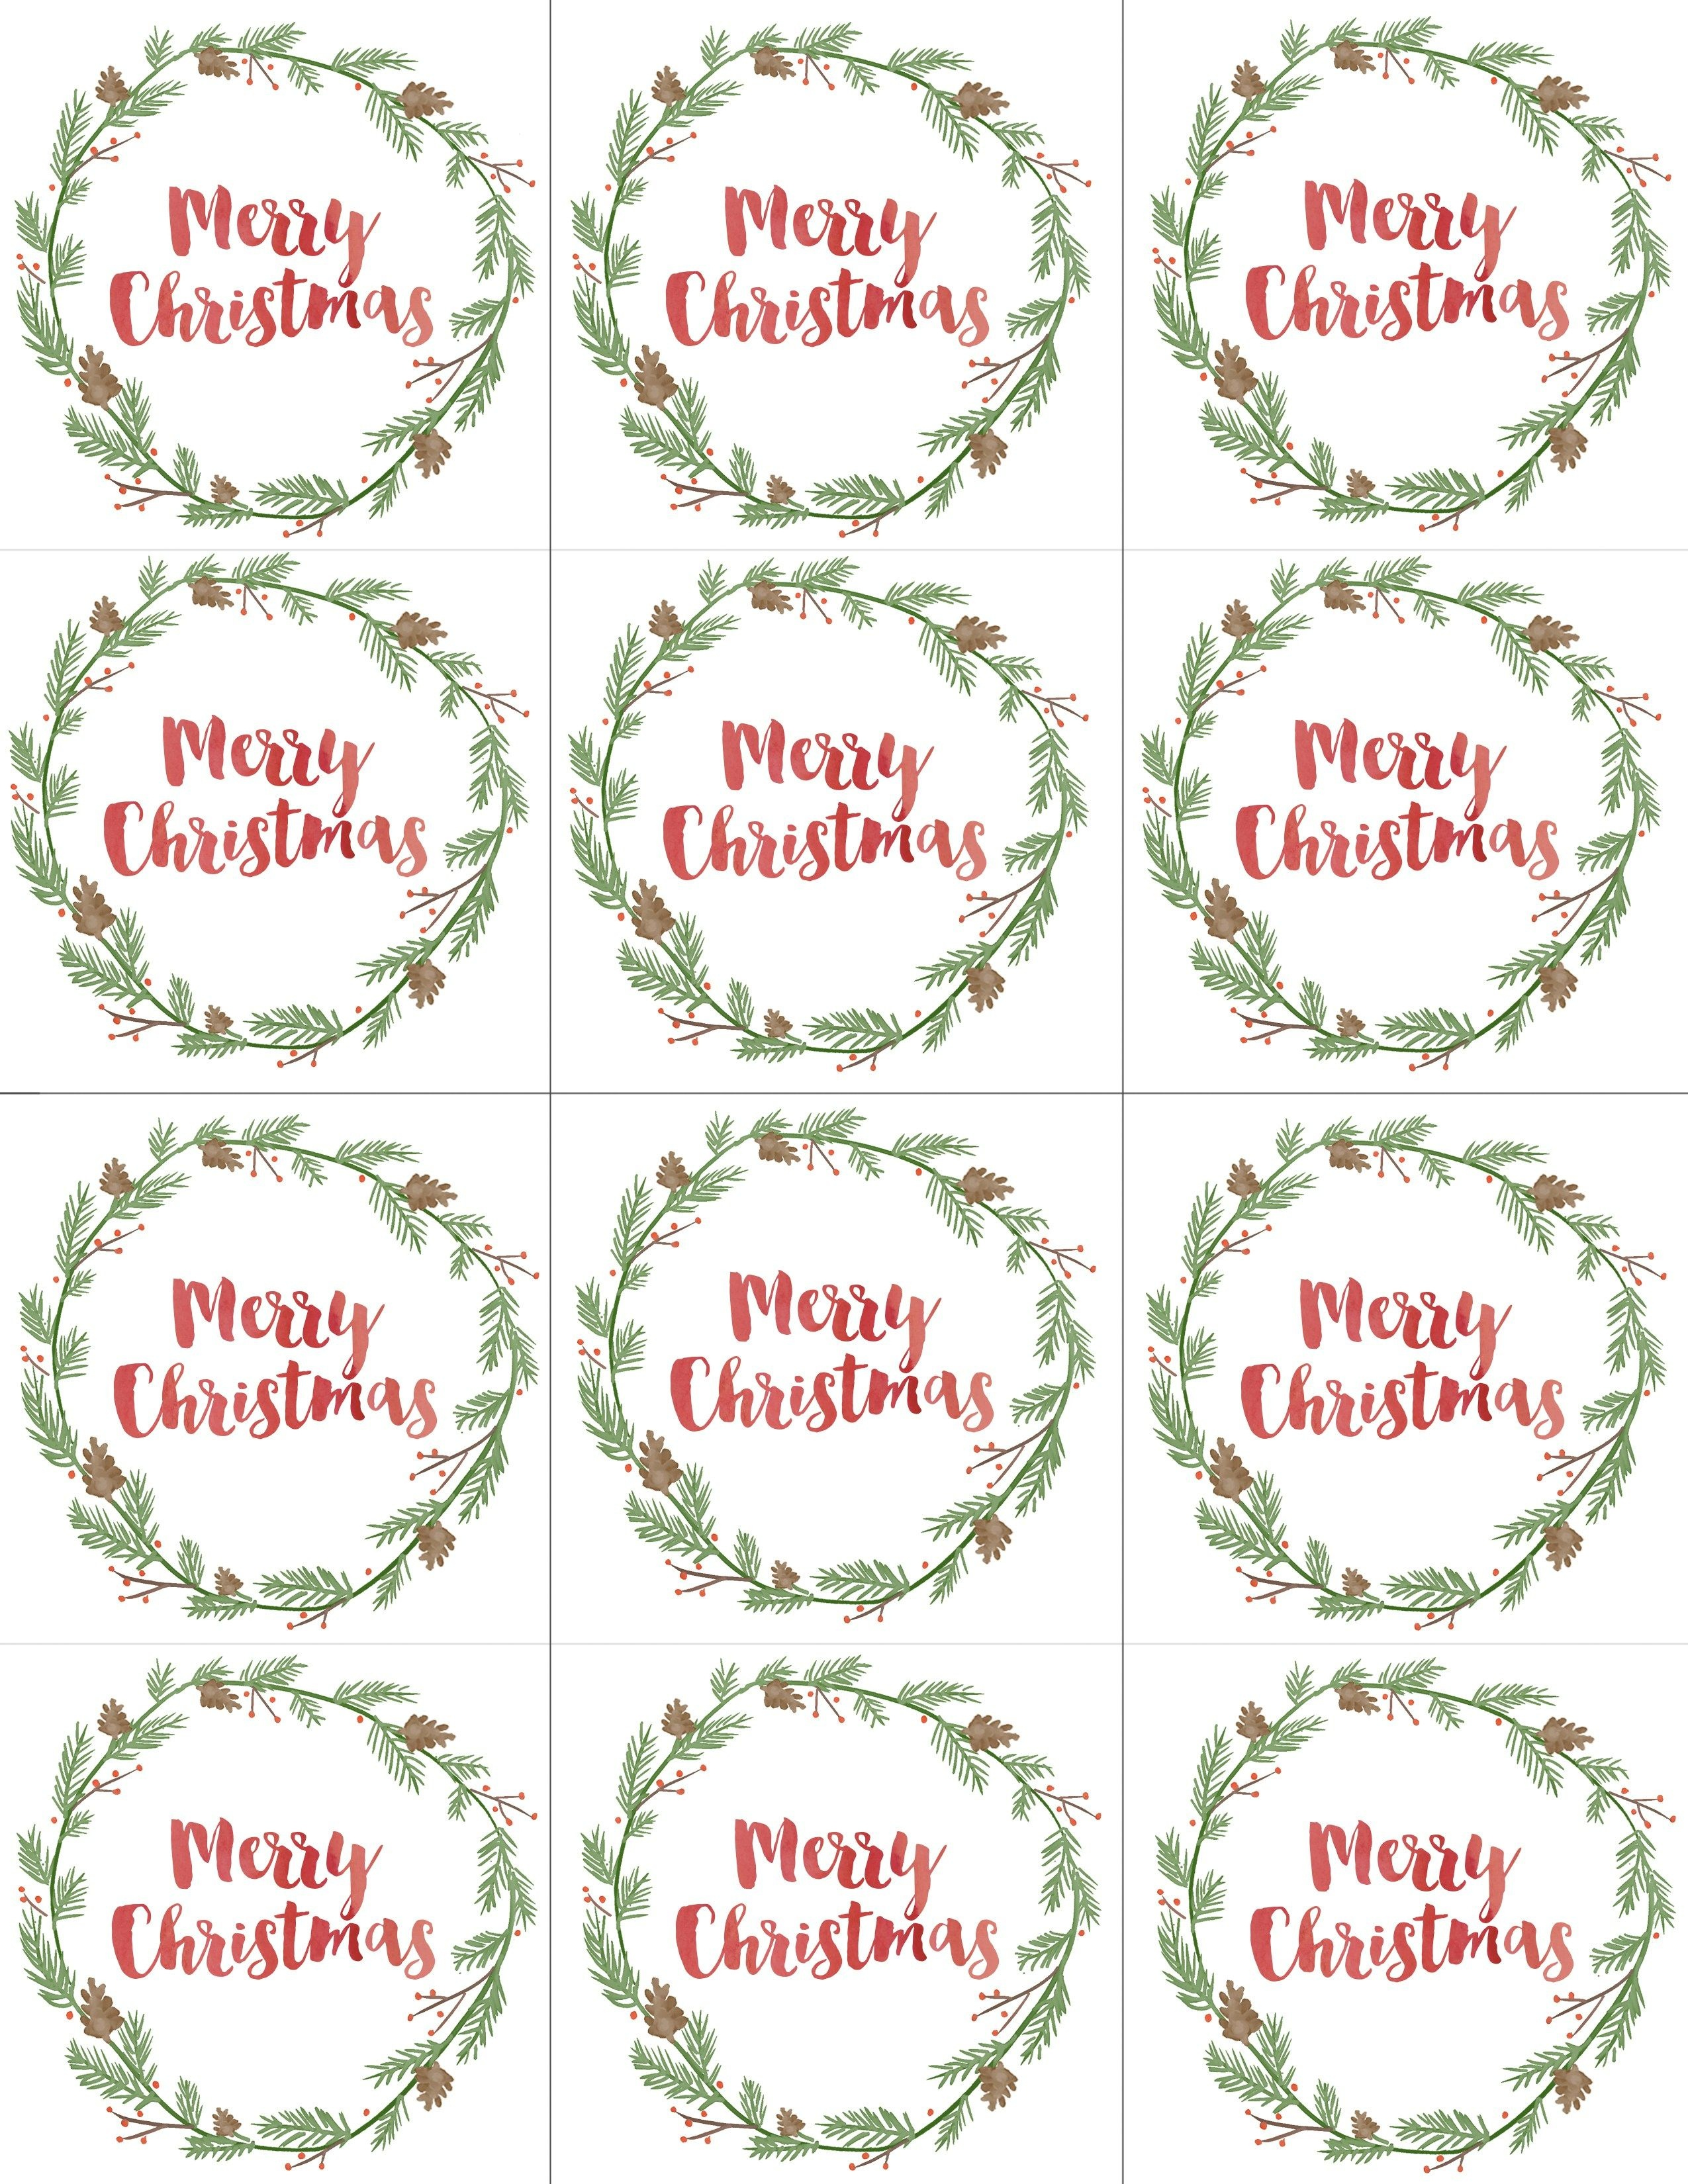 Hand Painted Gift Tags Free Printable   Christmas   Christmas Gift - Free Printable Gift Tags Personalized